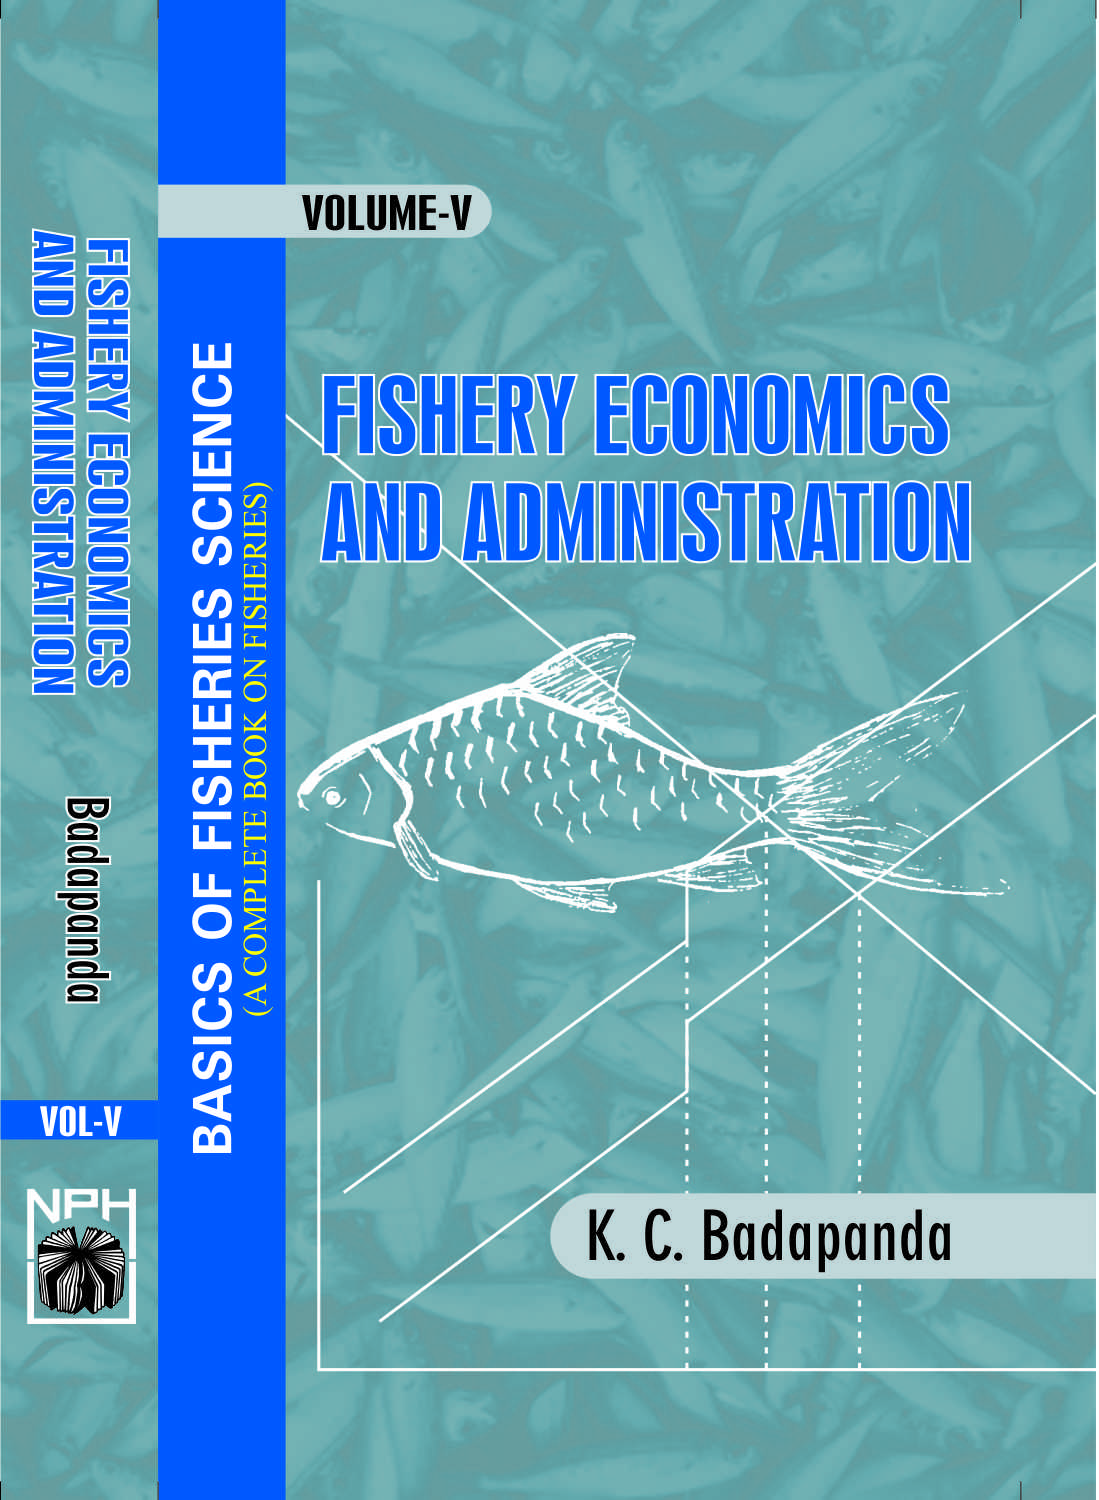 Basics of Fisheries Science : Vol V Fisheries Economics & Administration